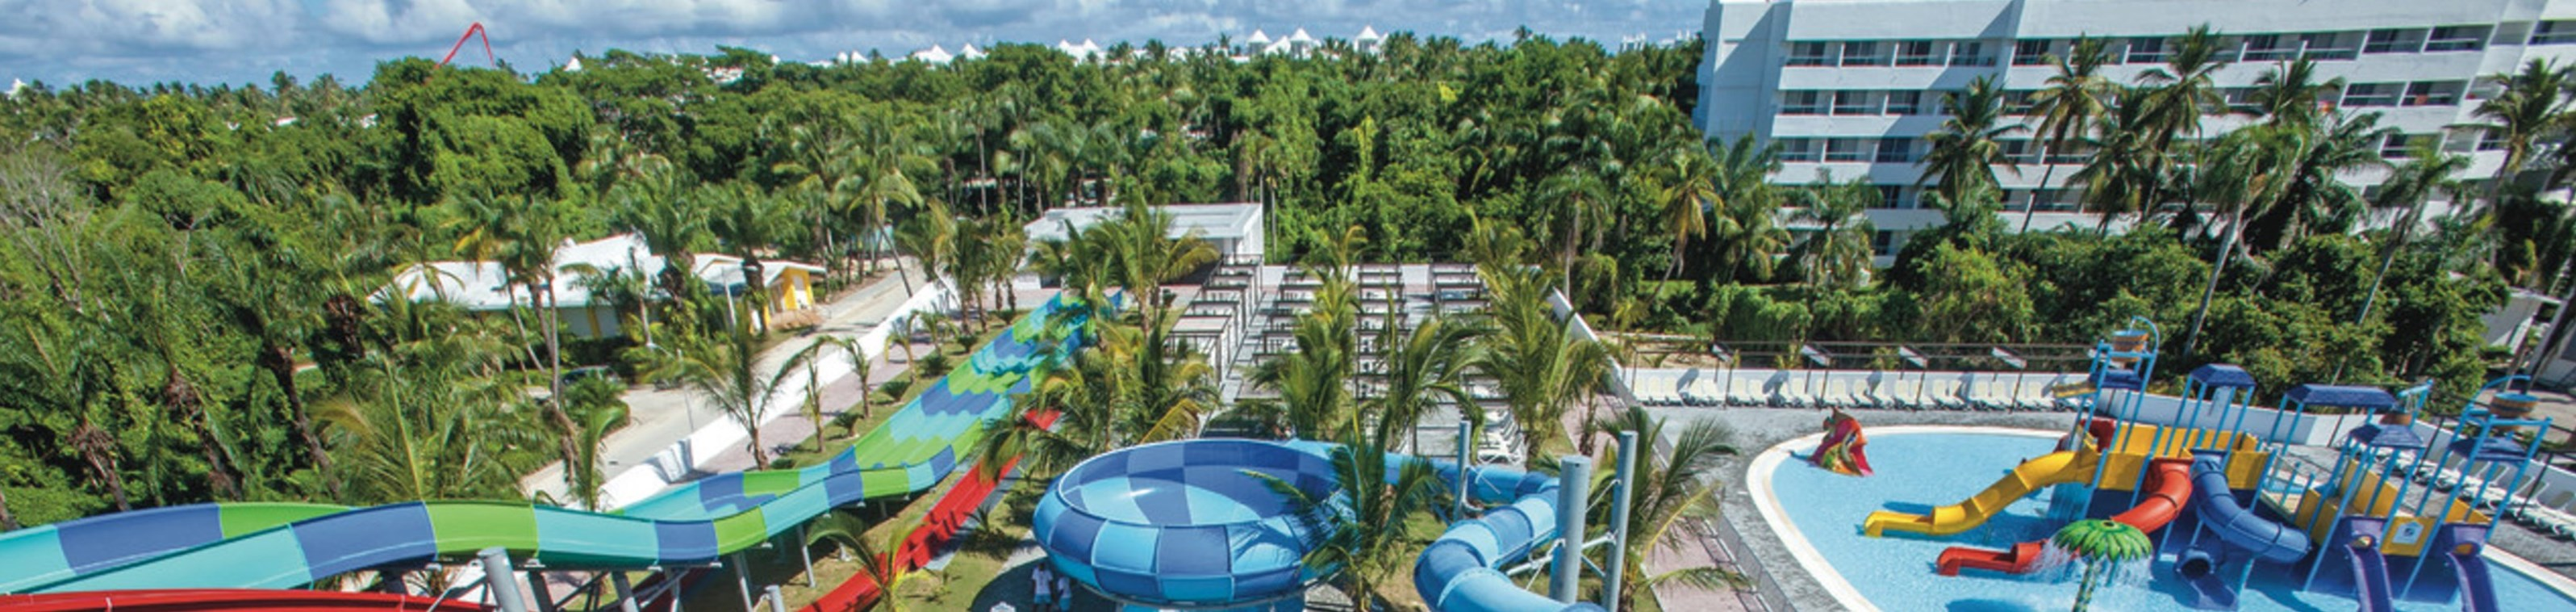 RIU Splash Water World en de RIU Pool Party op Punta Cana